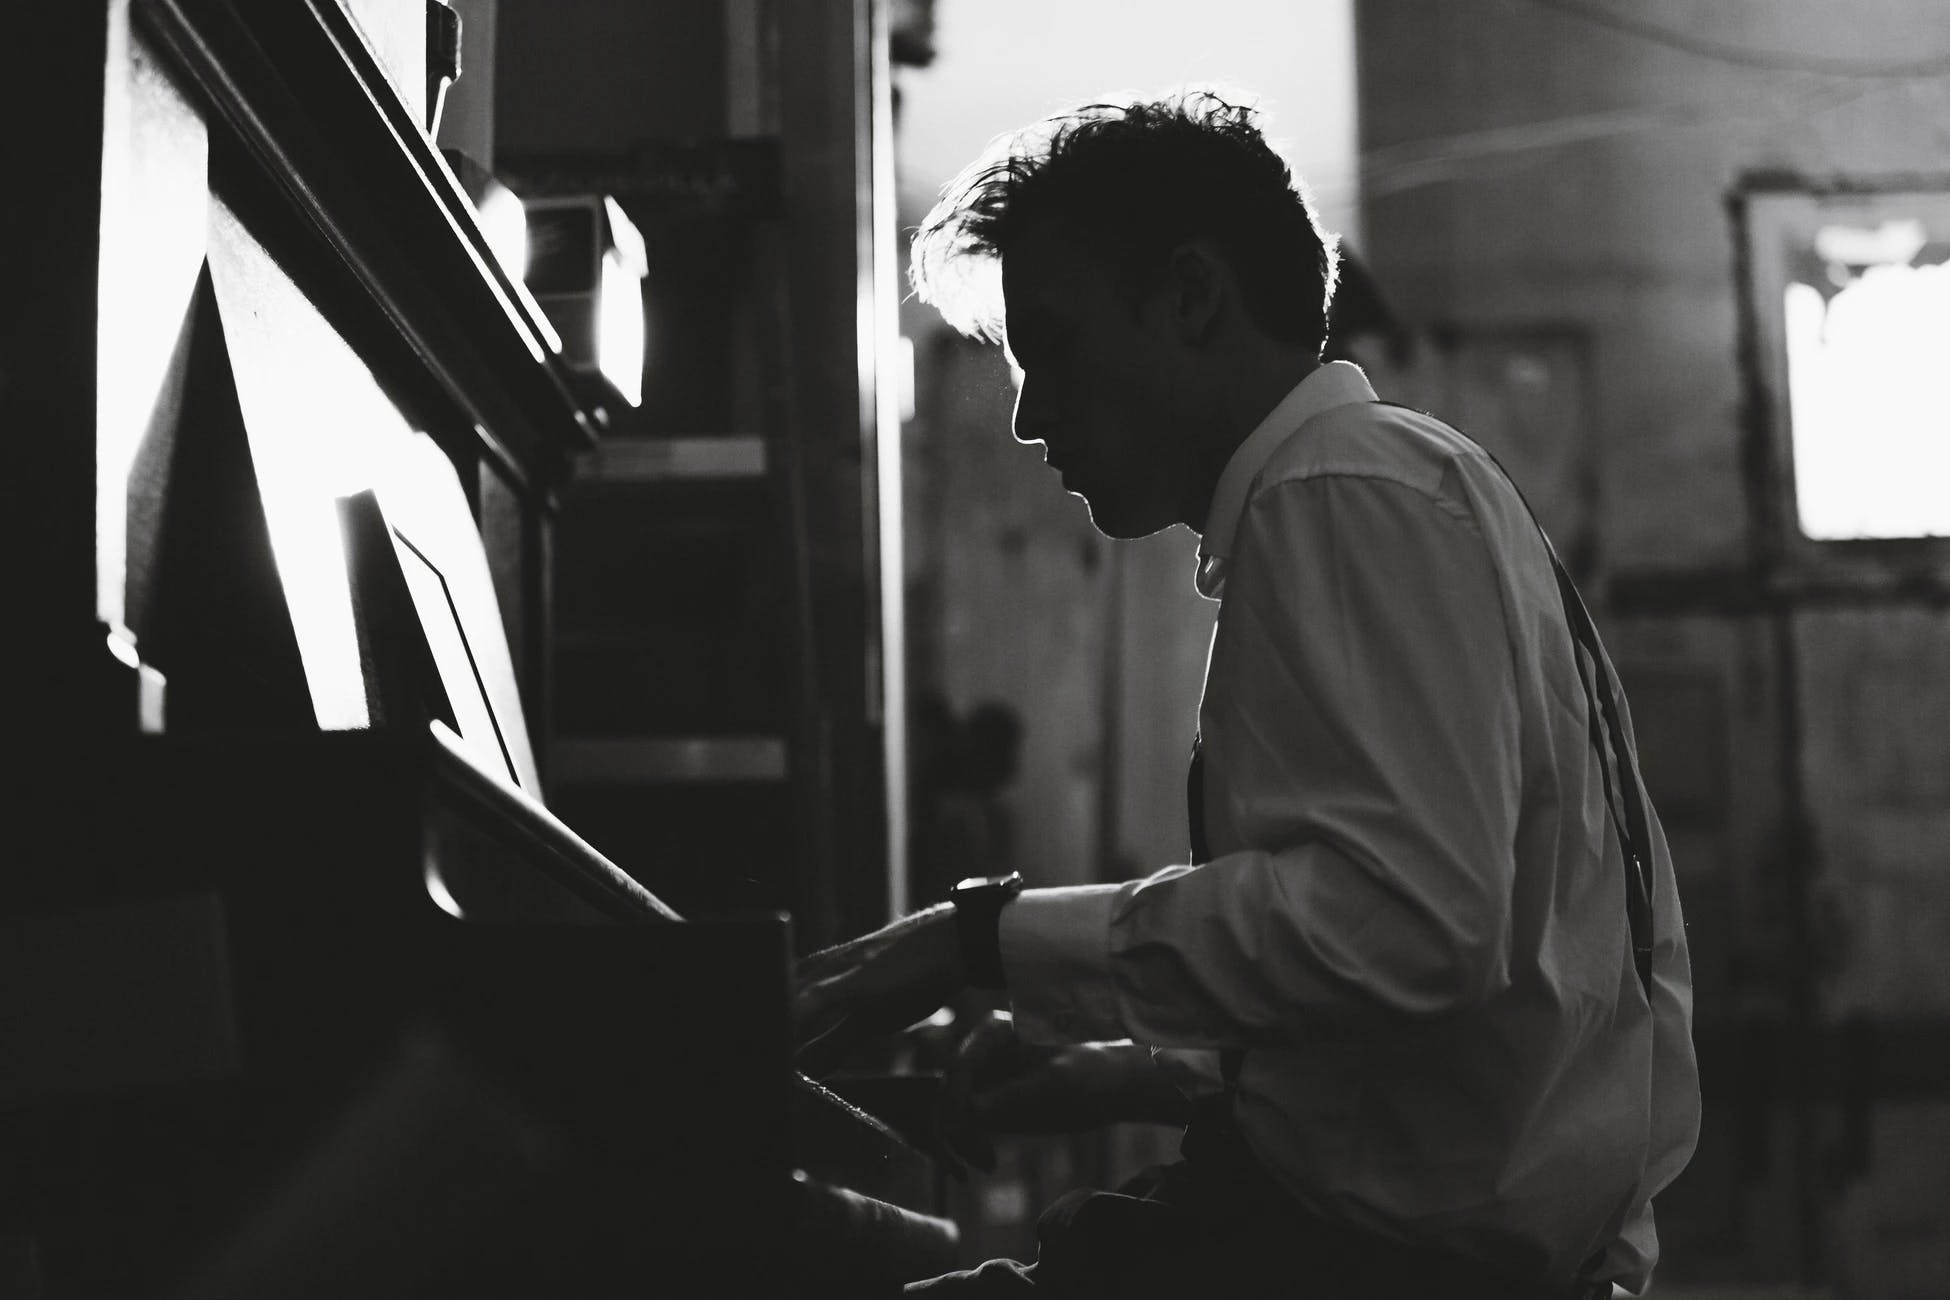 Man in white shirt is playing piano